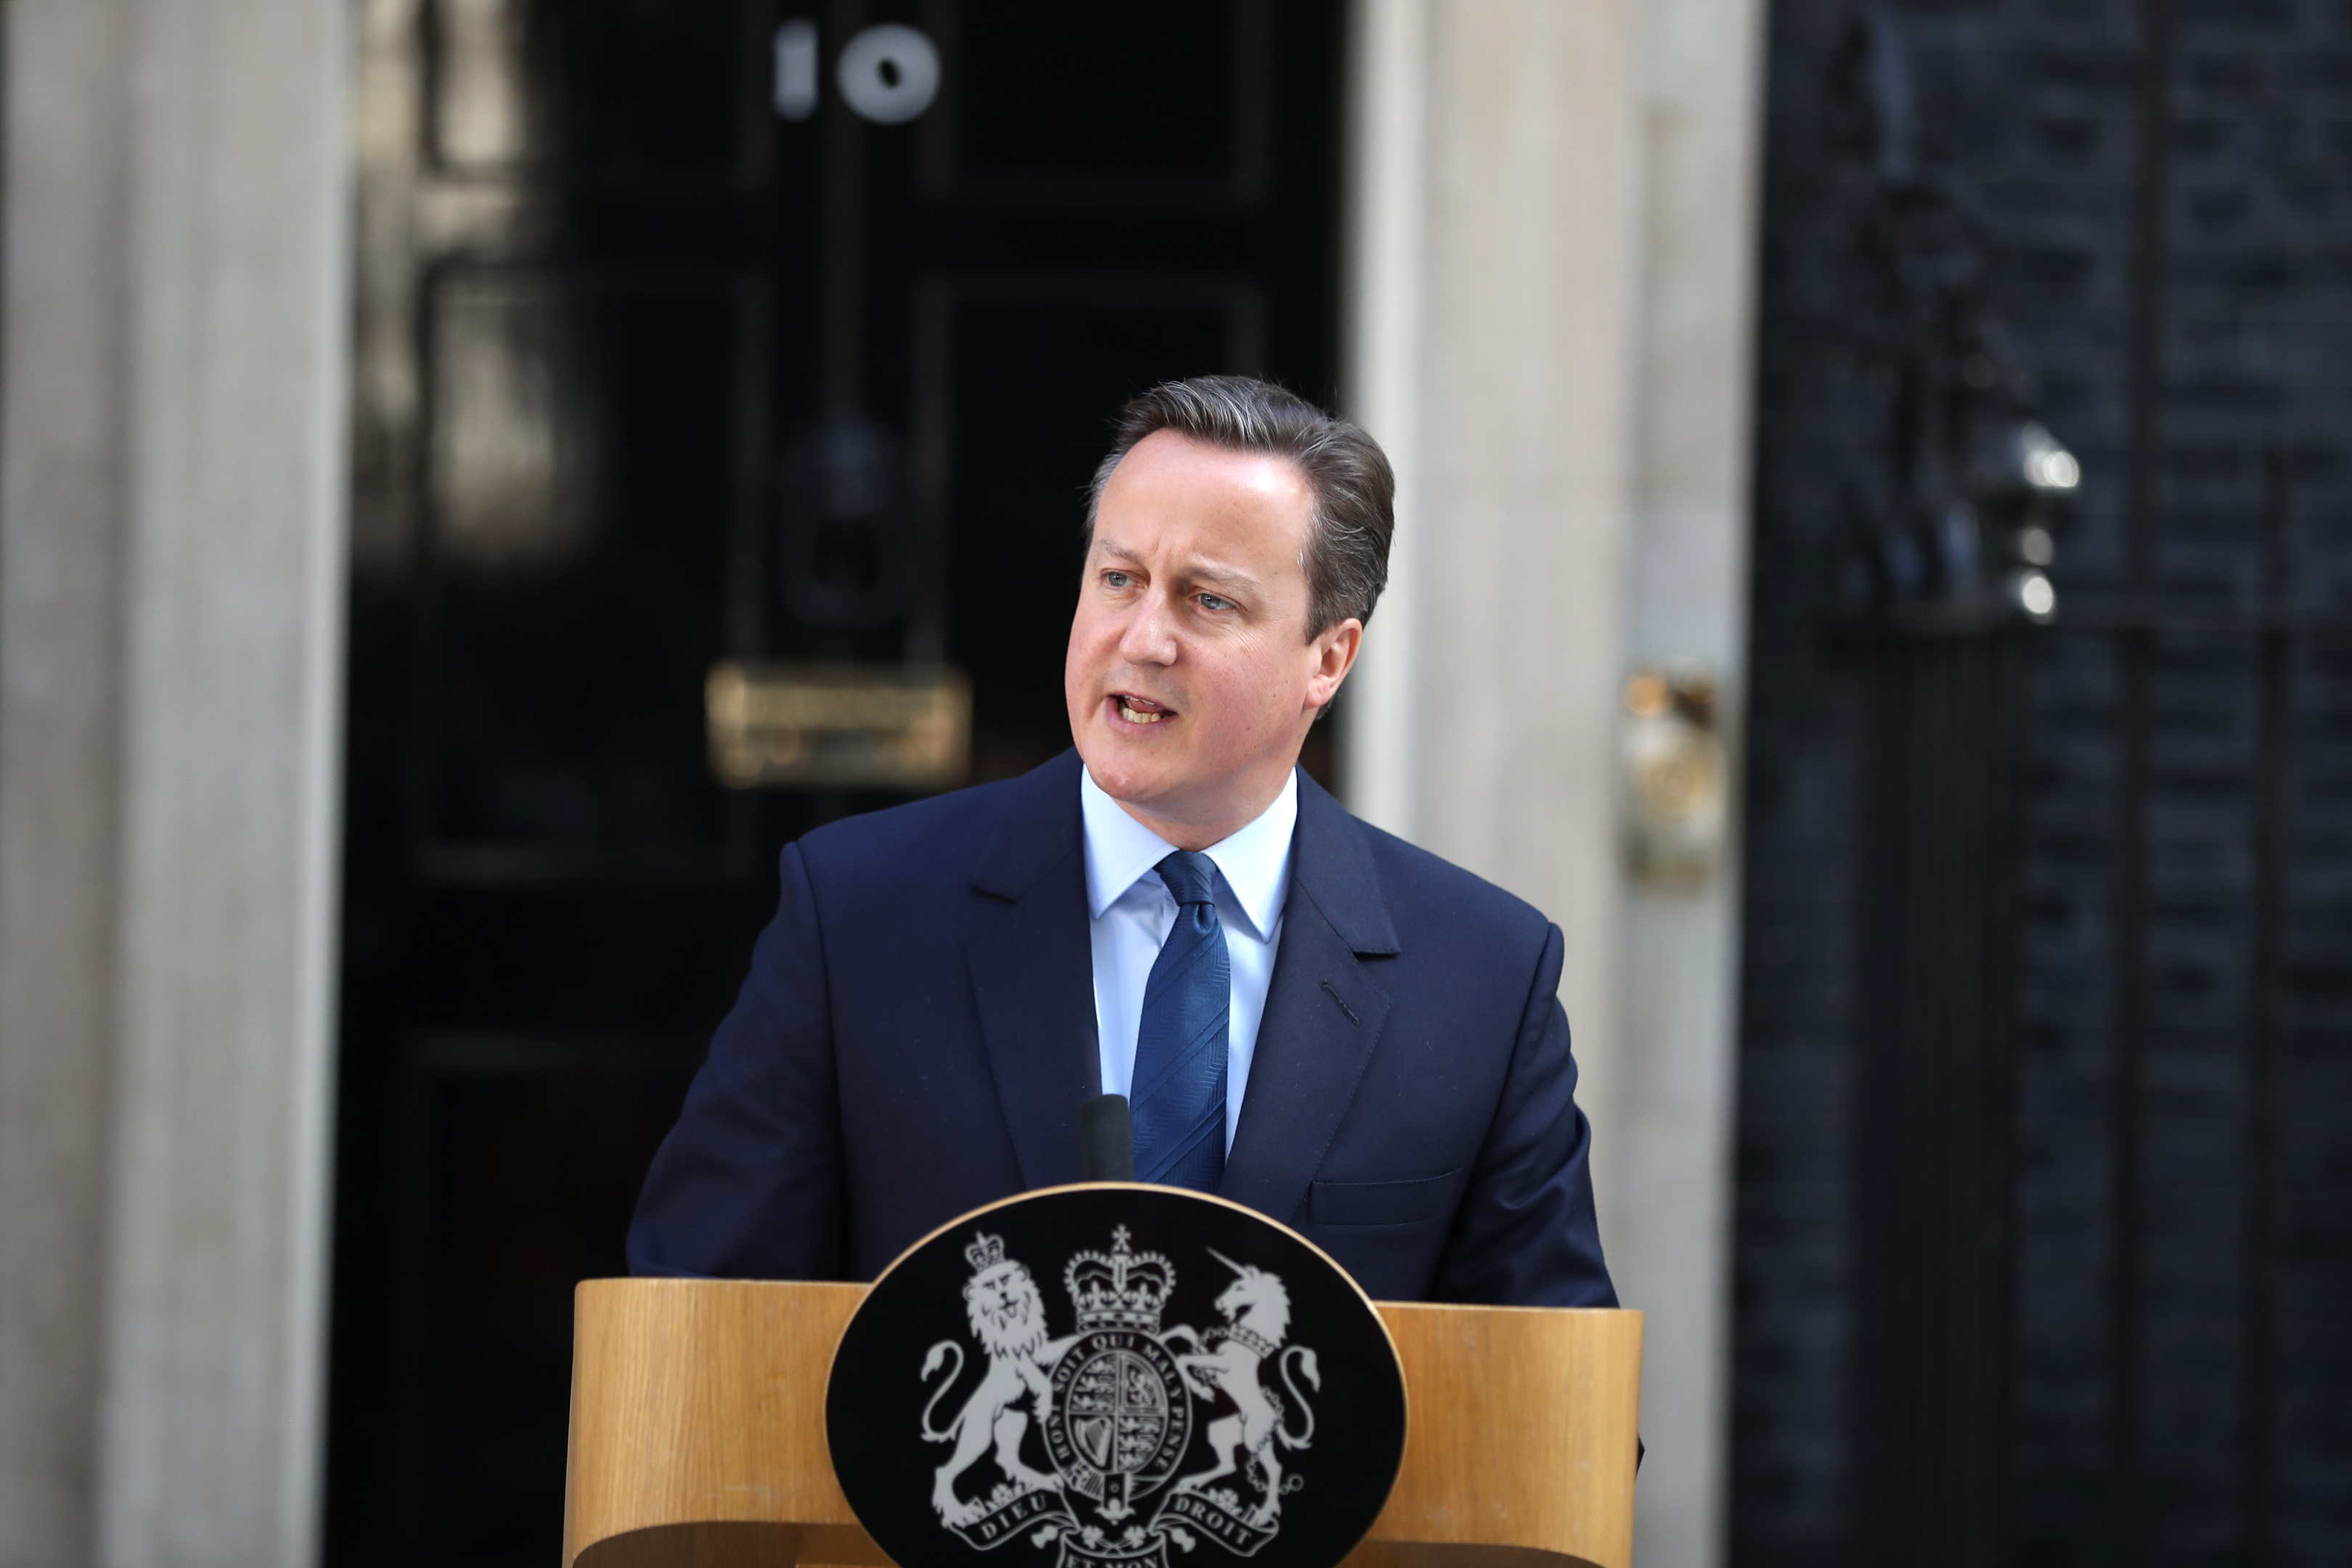 David Cameron announces his resignation.